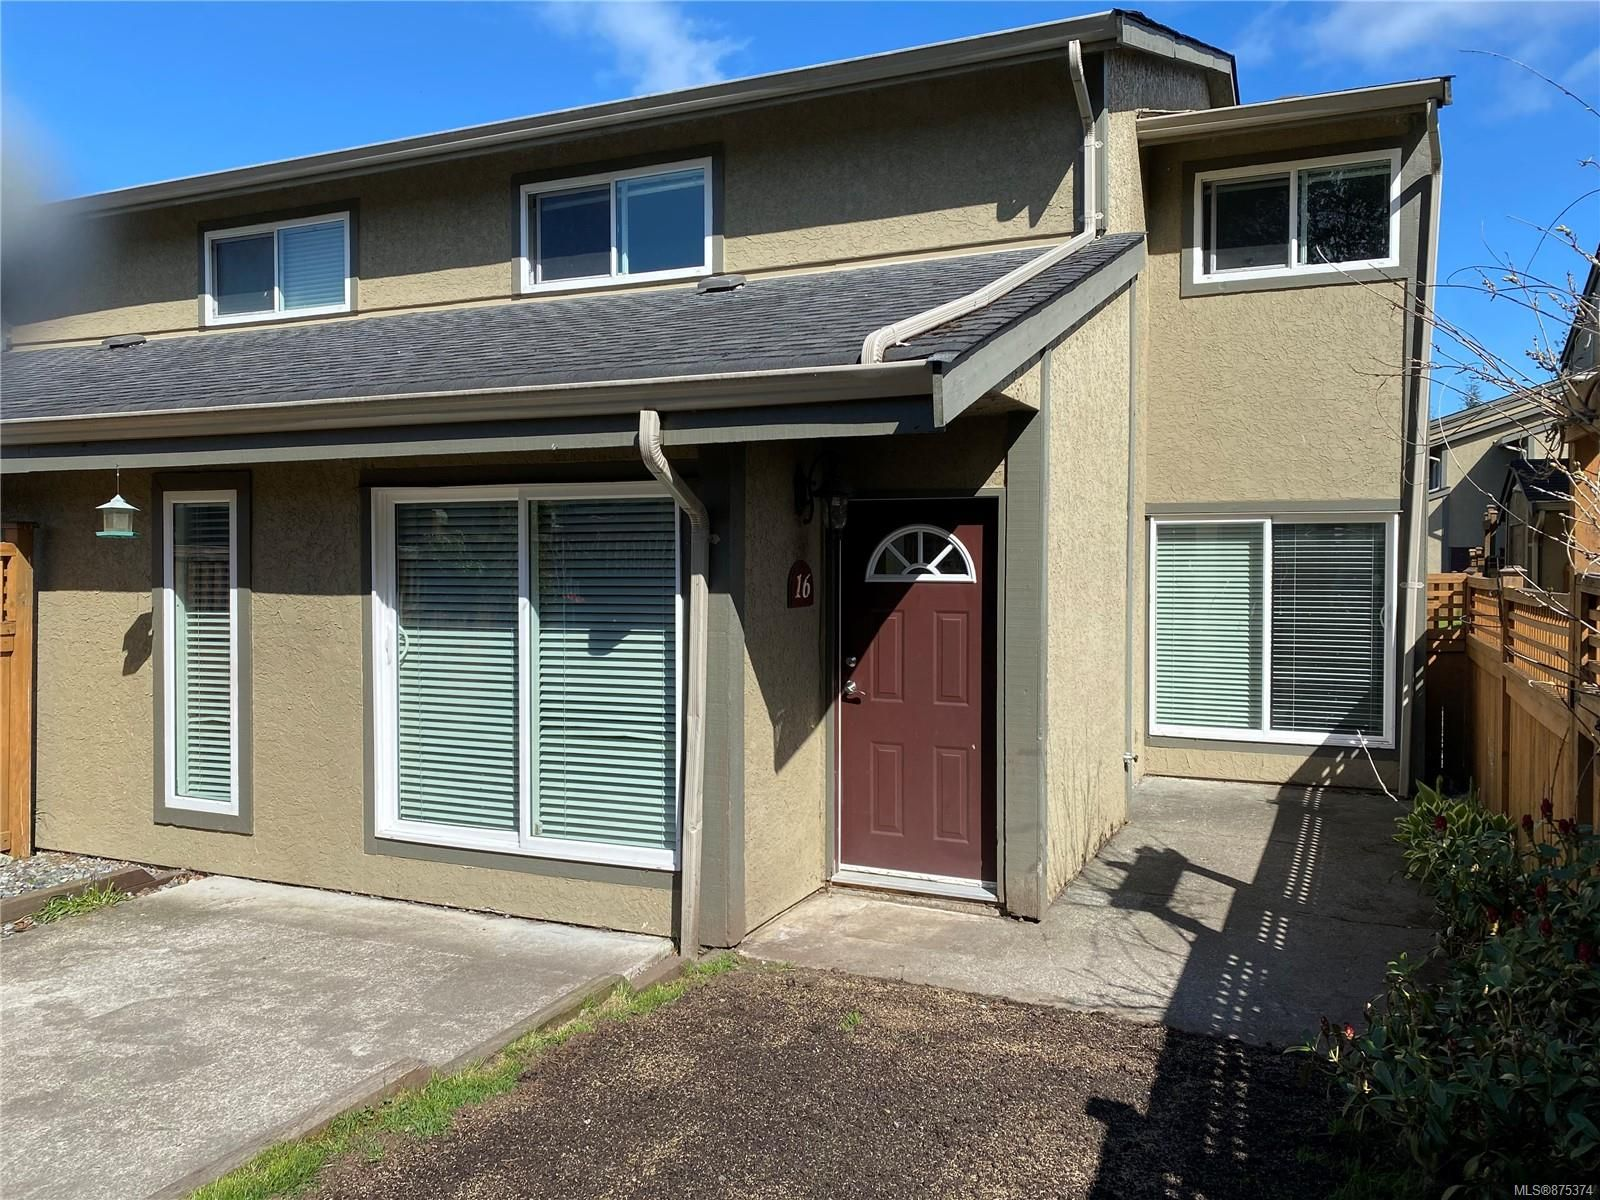 Main Photo: 16 9130 Granville St in : NI Port Hardy Row/Townhouse for sale (North Island)  : MLS®# 875374